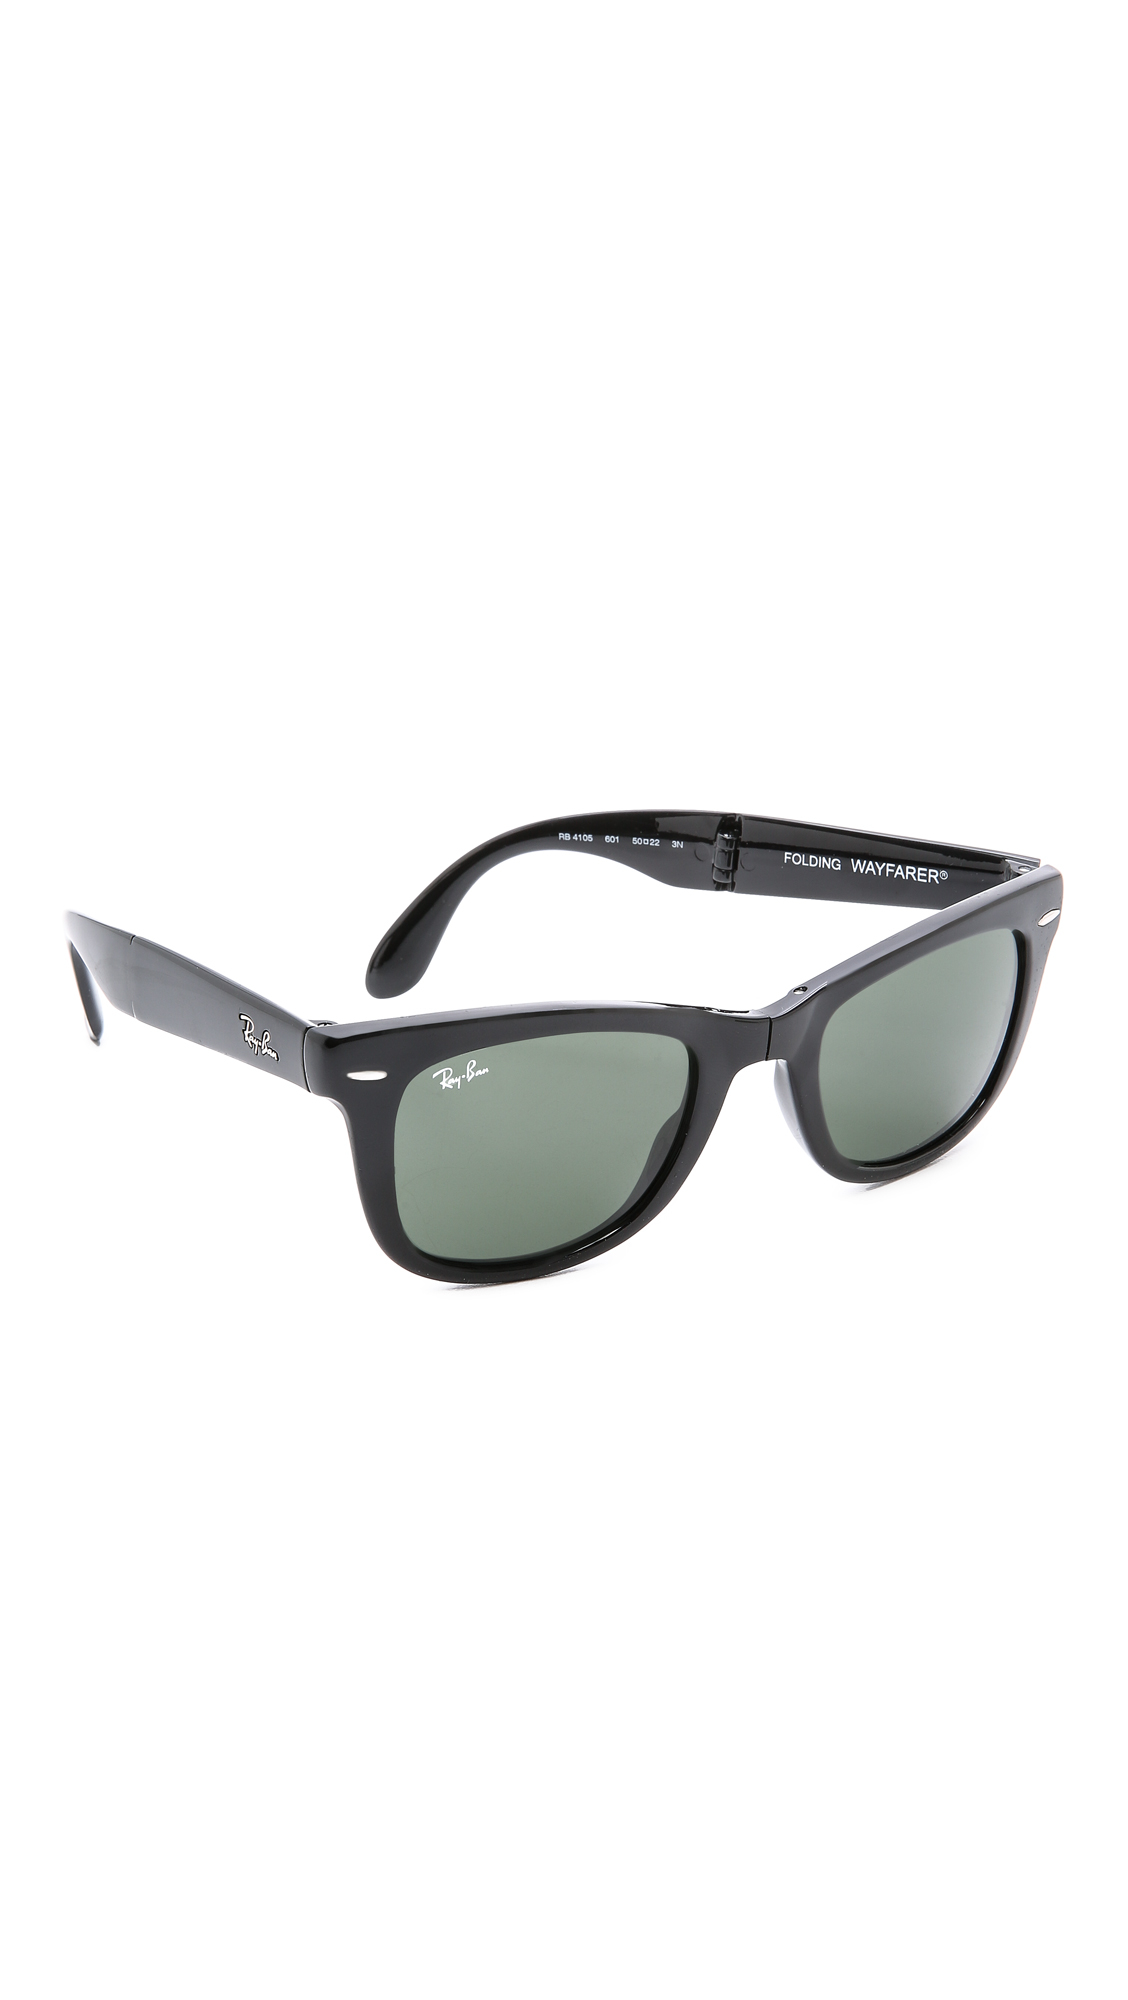 Ray ban folding wayfarer sunglasses in black lyst for Wayfare berlin